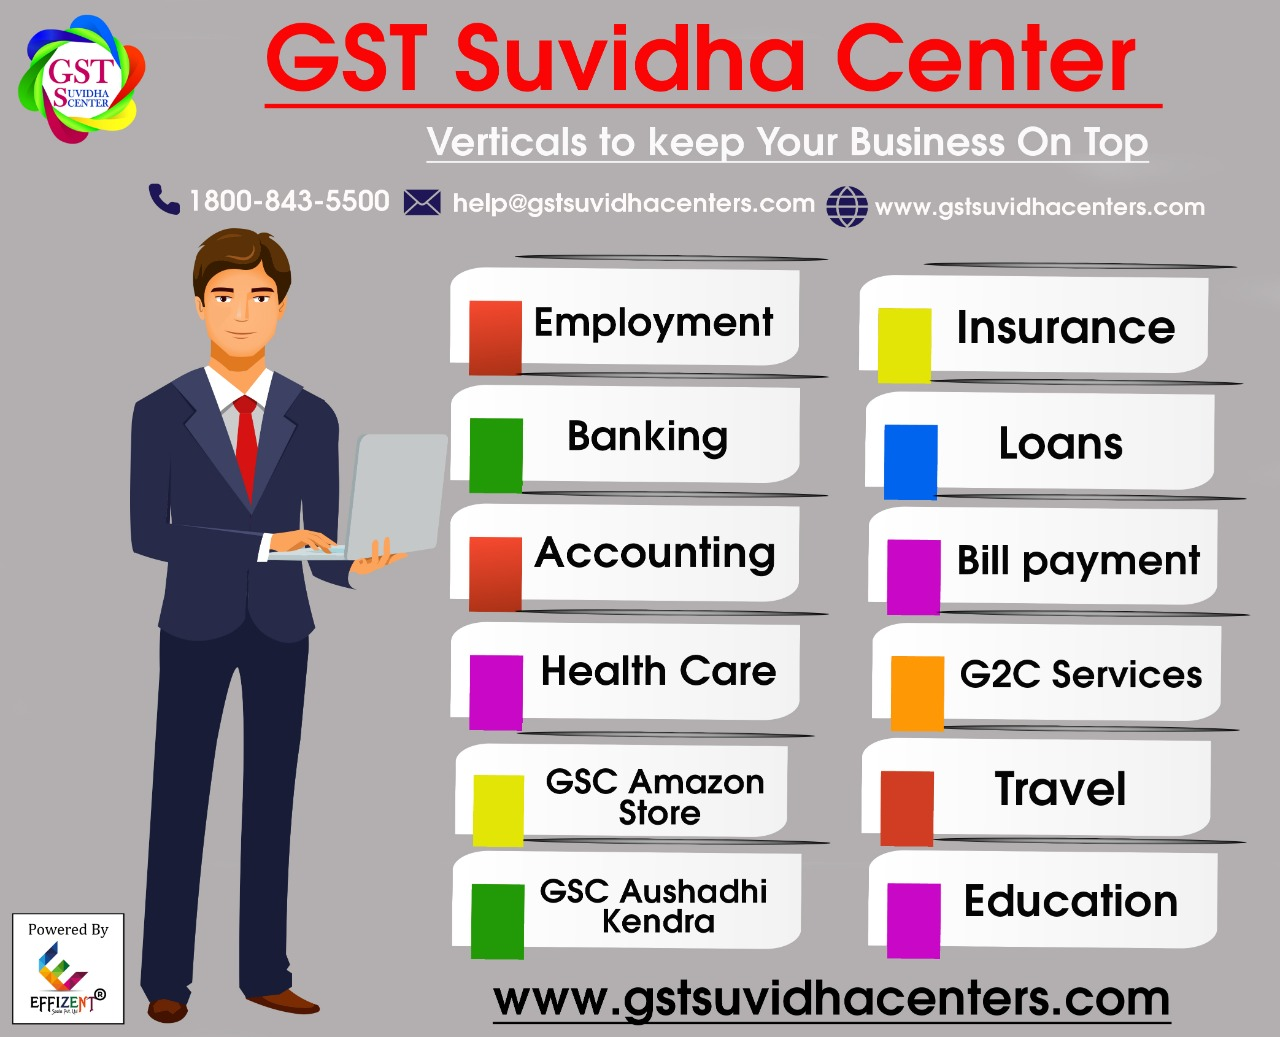 GST Suvidha Center Services